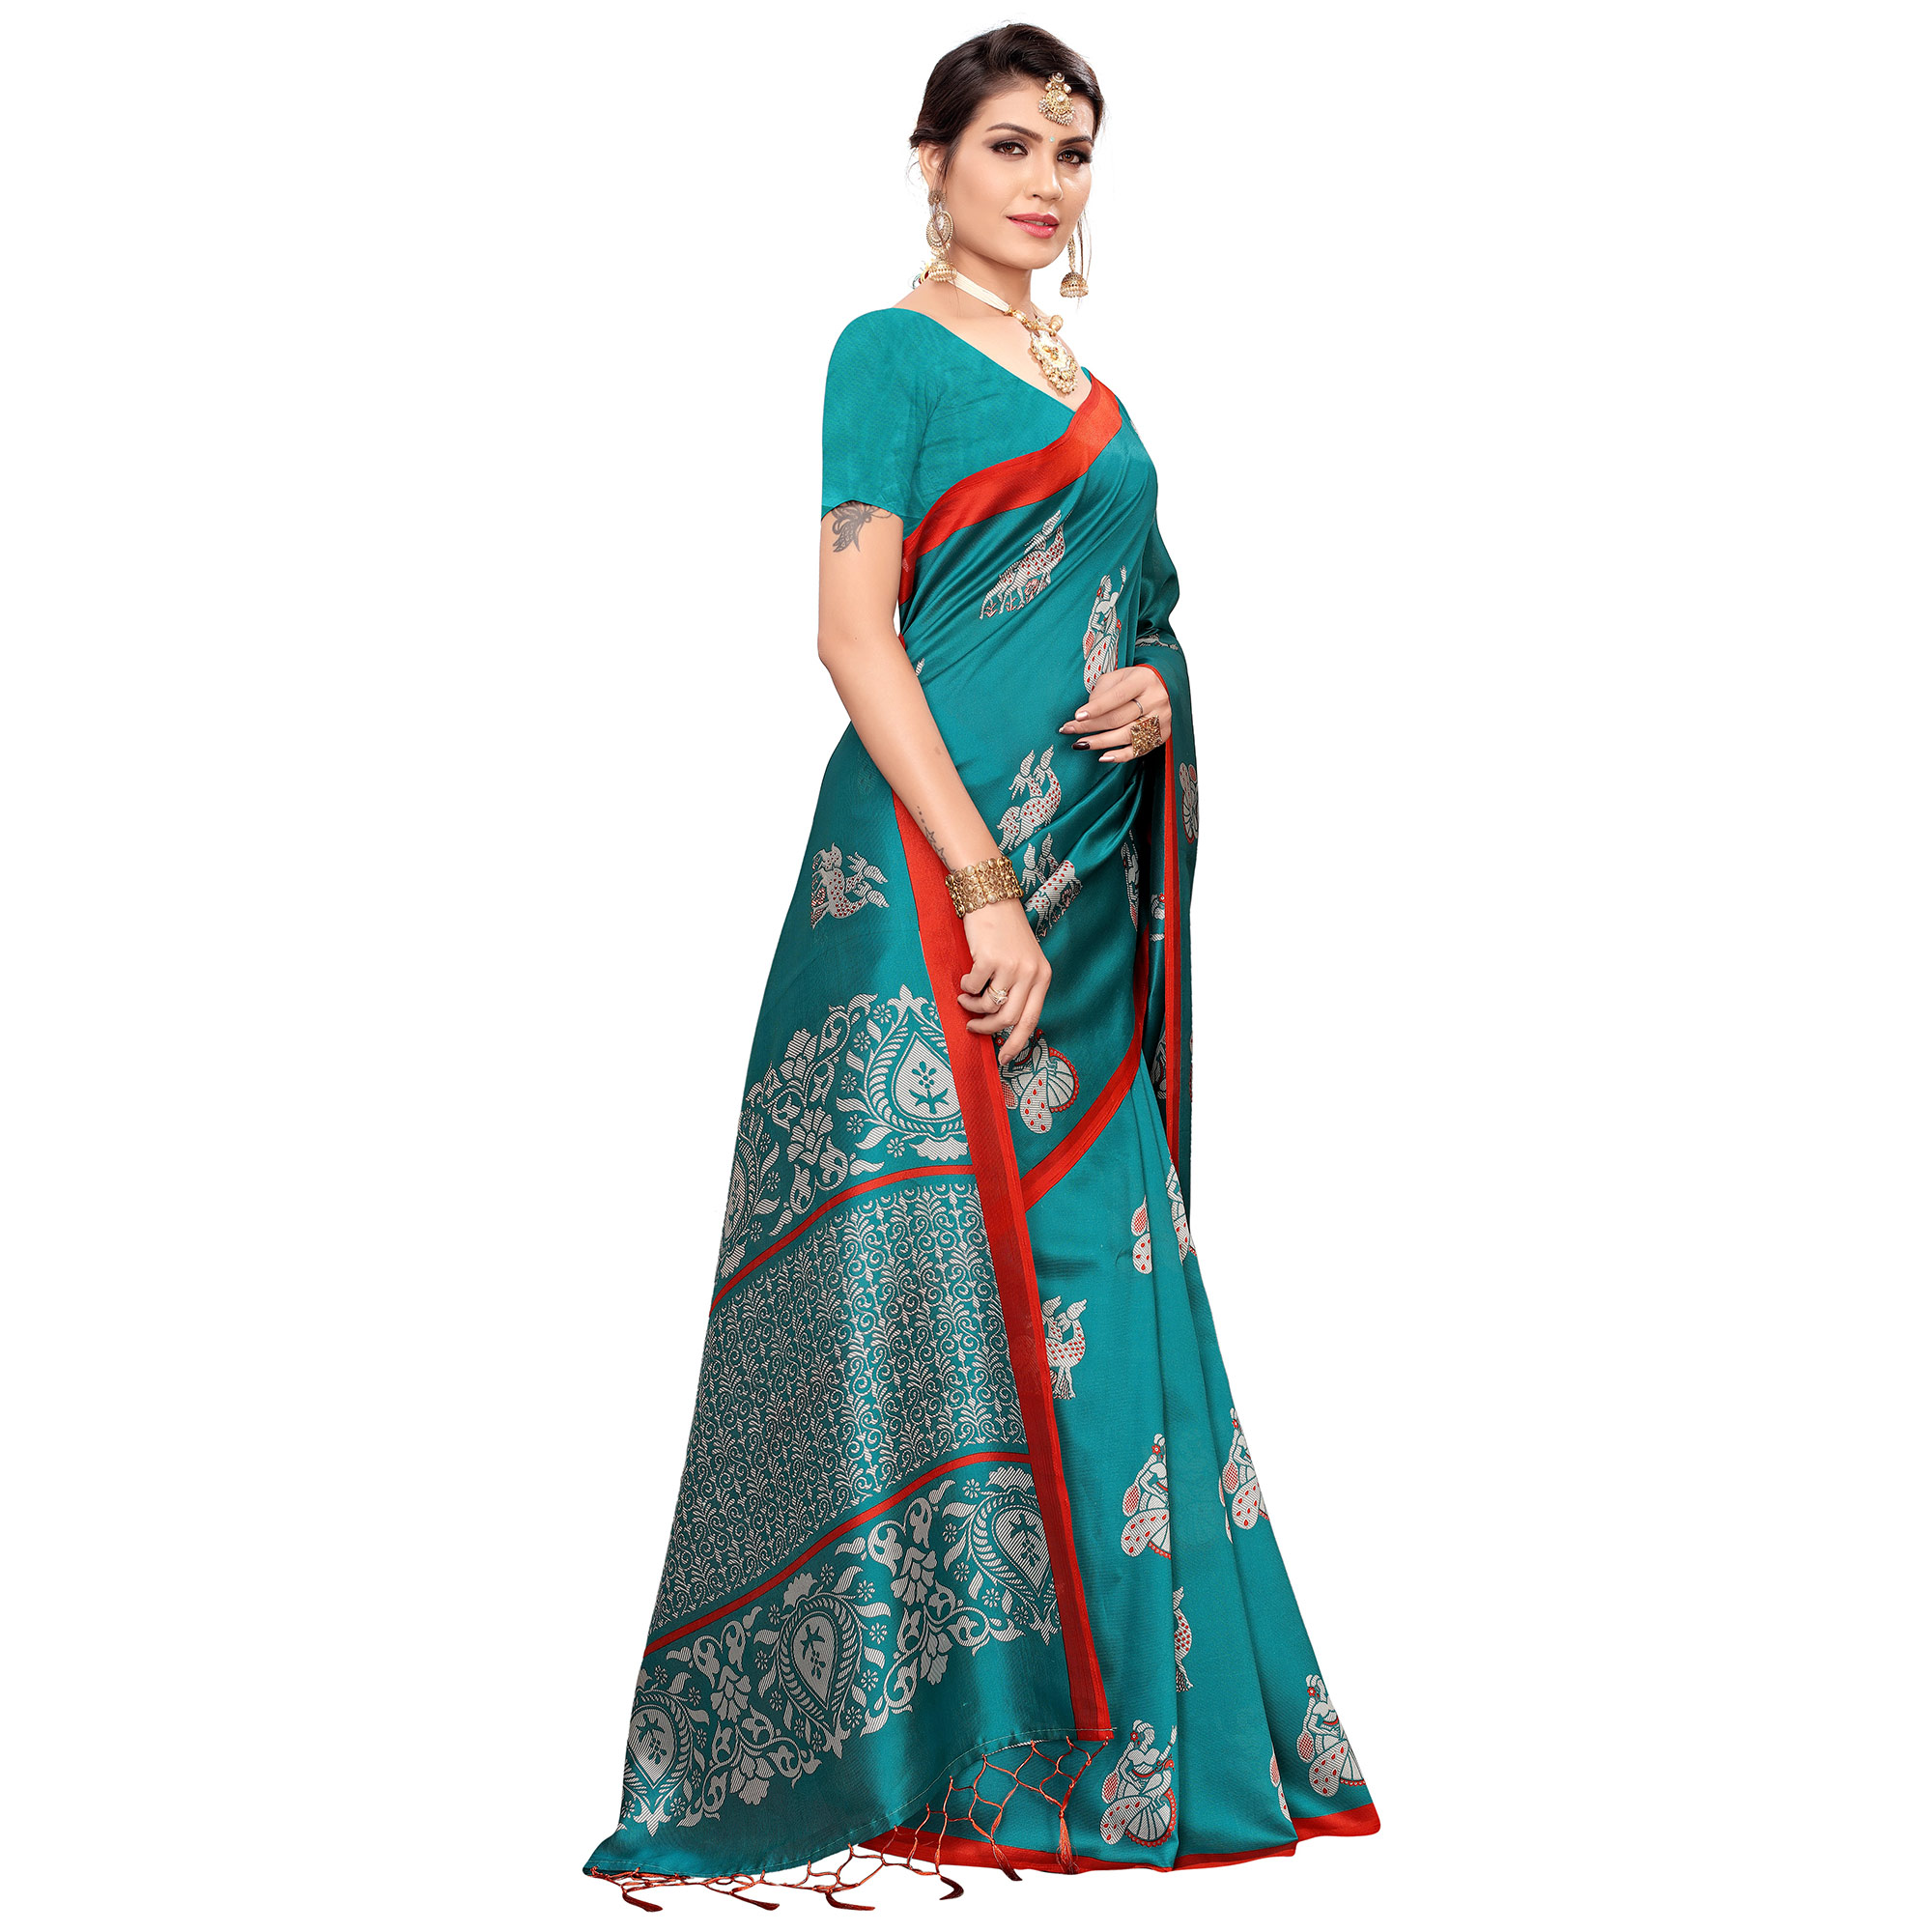 Opulent Turquoise Blue Colored Festive Wear Printed Mysore Silk Saree